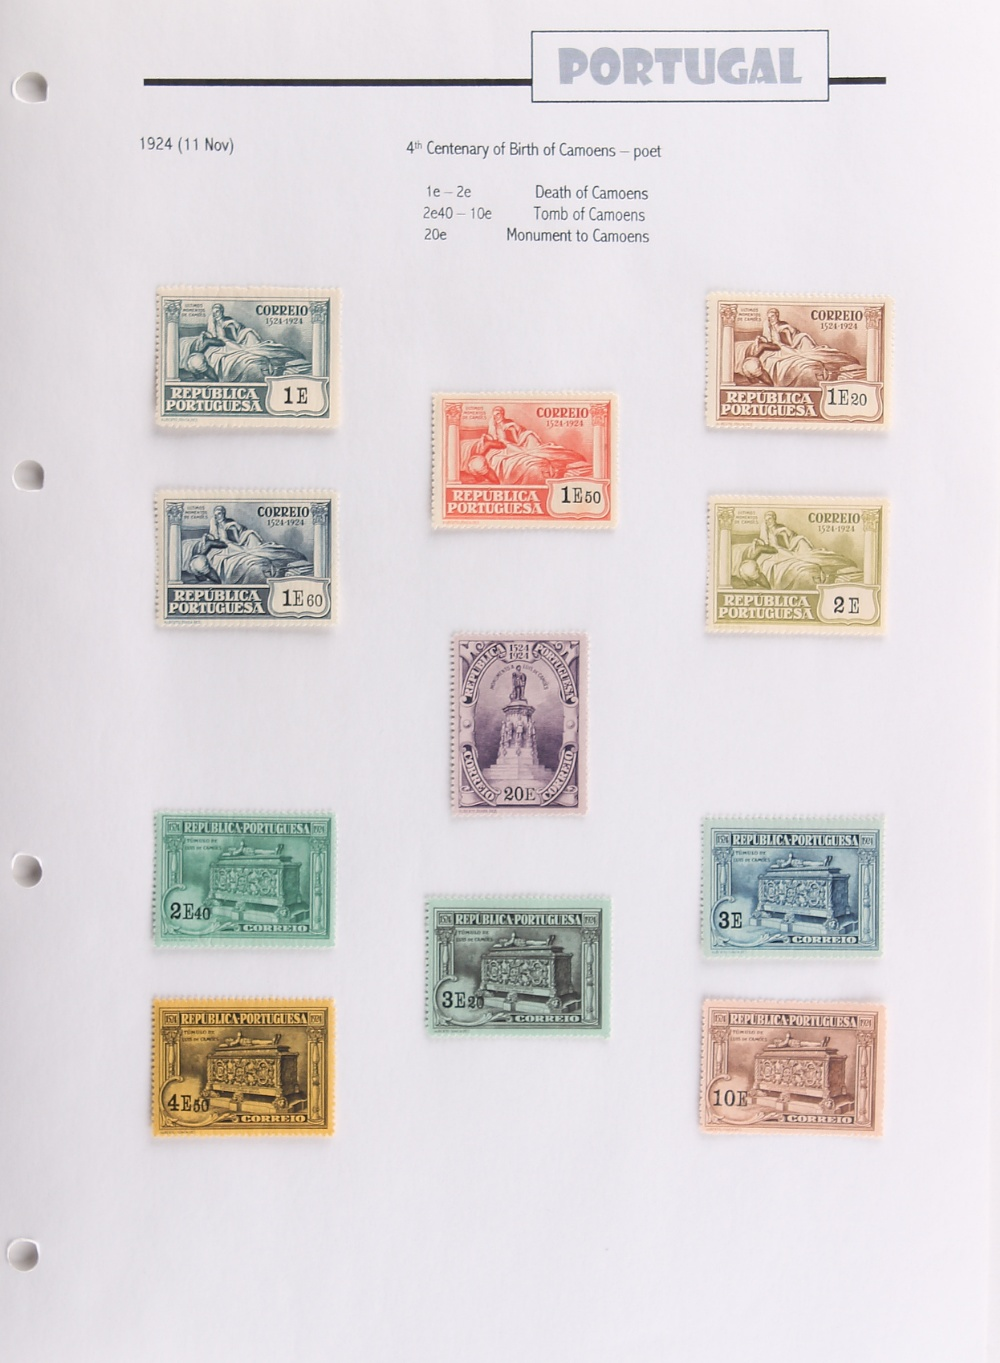 The Basil Lewis (1927-2019) collection of stamps - Portugal: In one volume including 1917-26